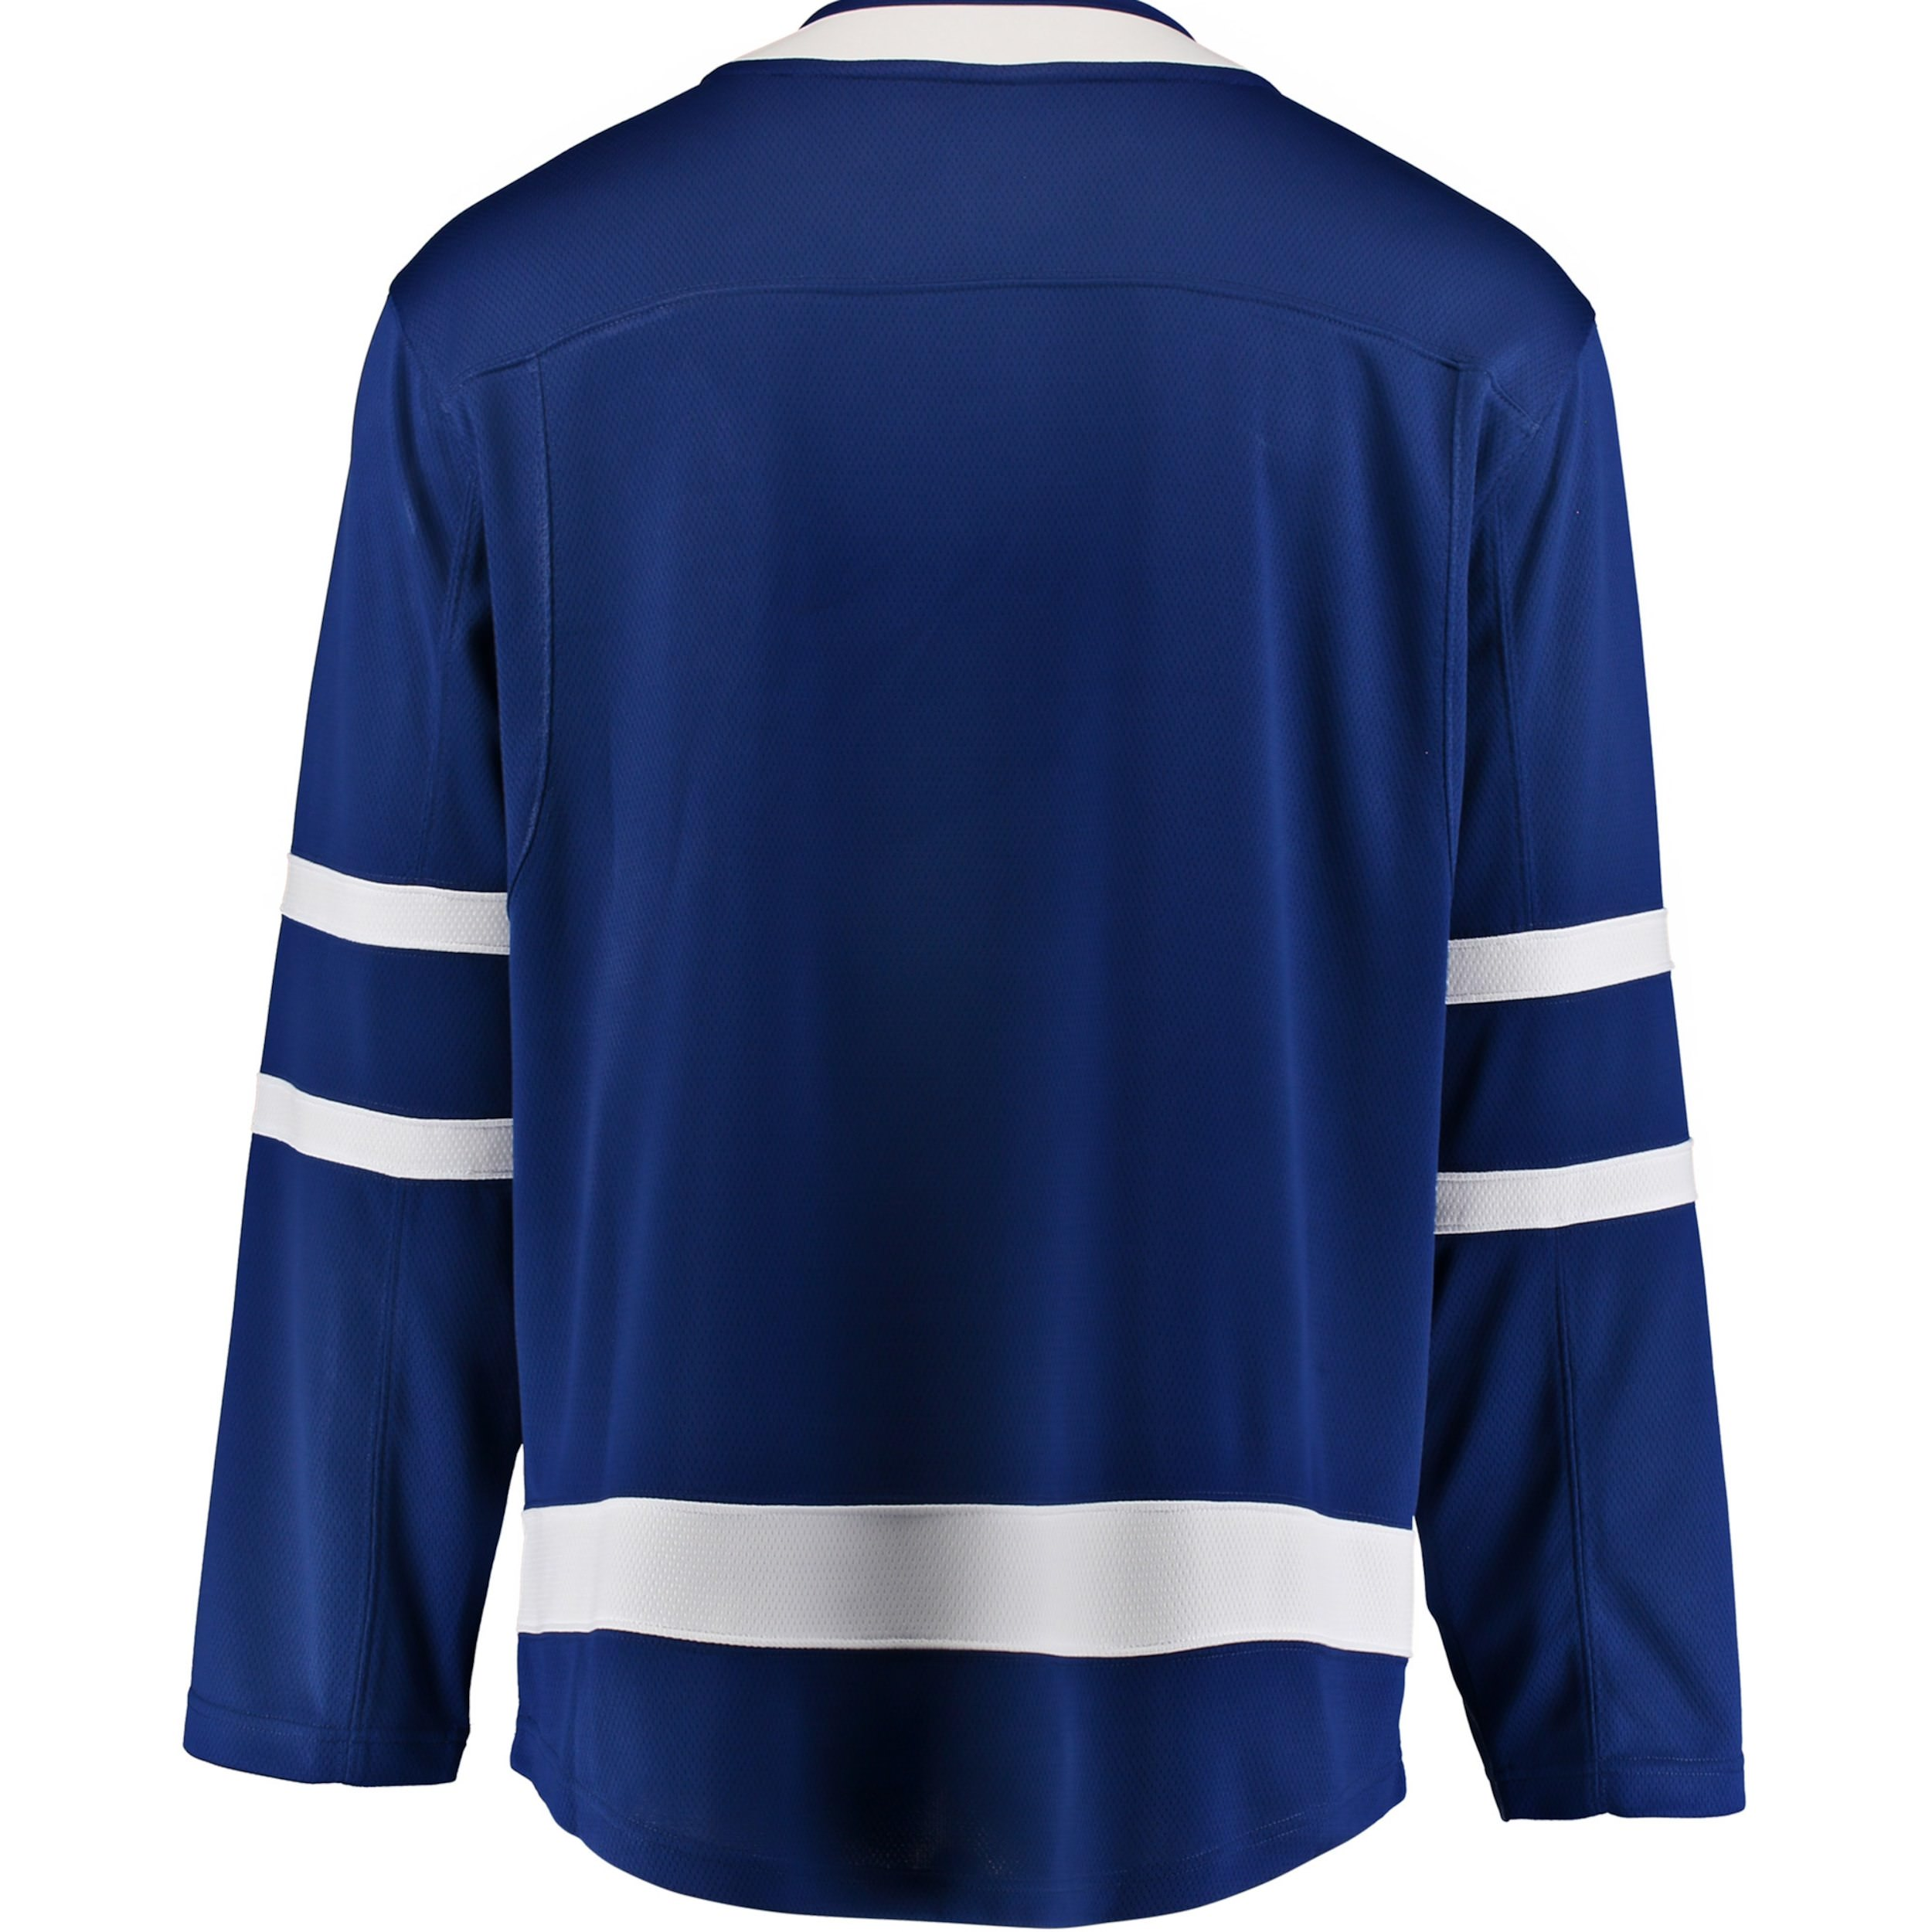 Toronto Maple Leafs NHL Fanatics Breakaway Home Jersey - image 1 of 2